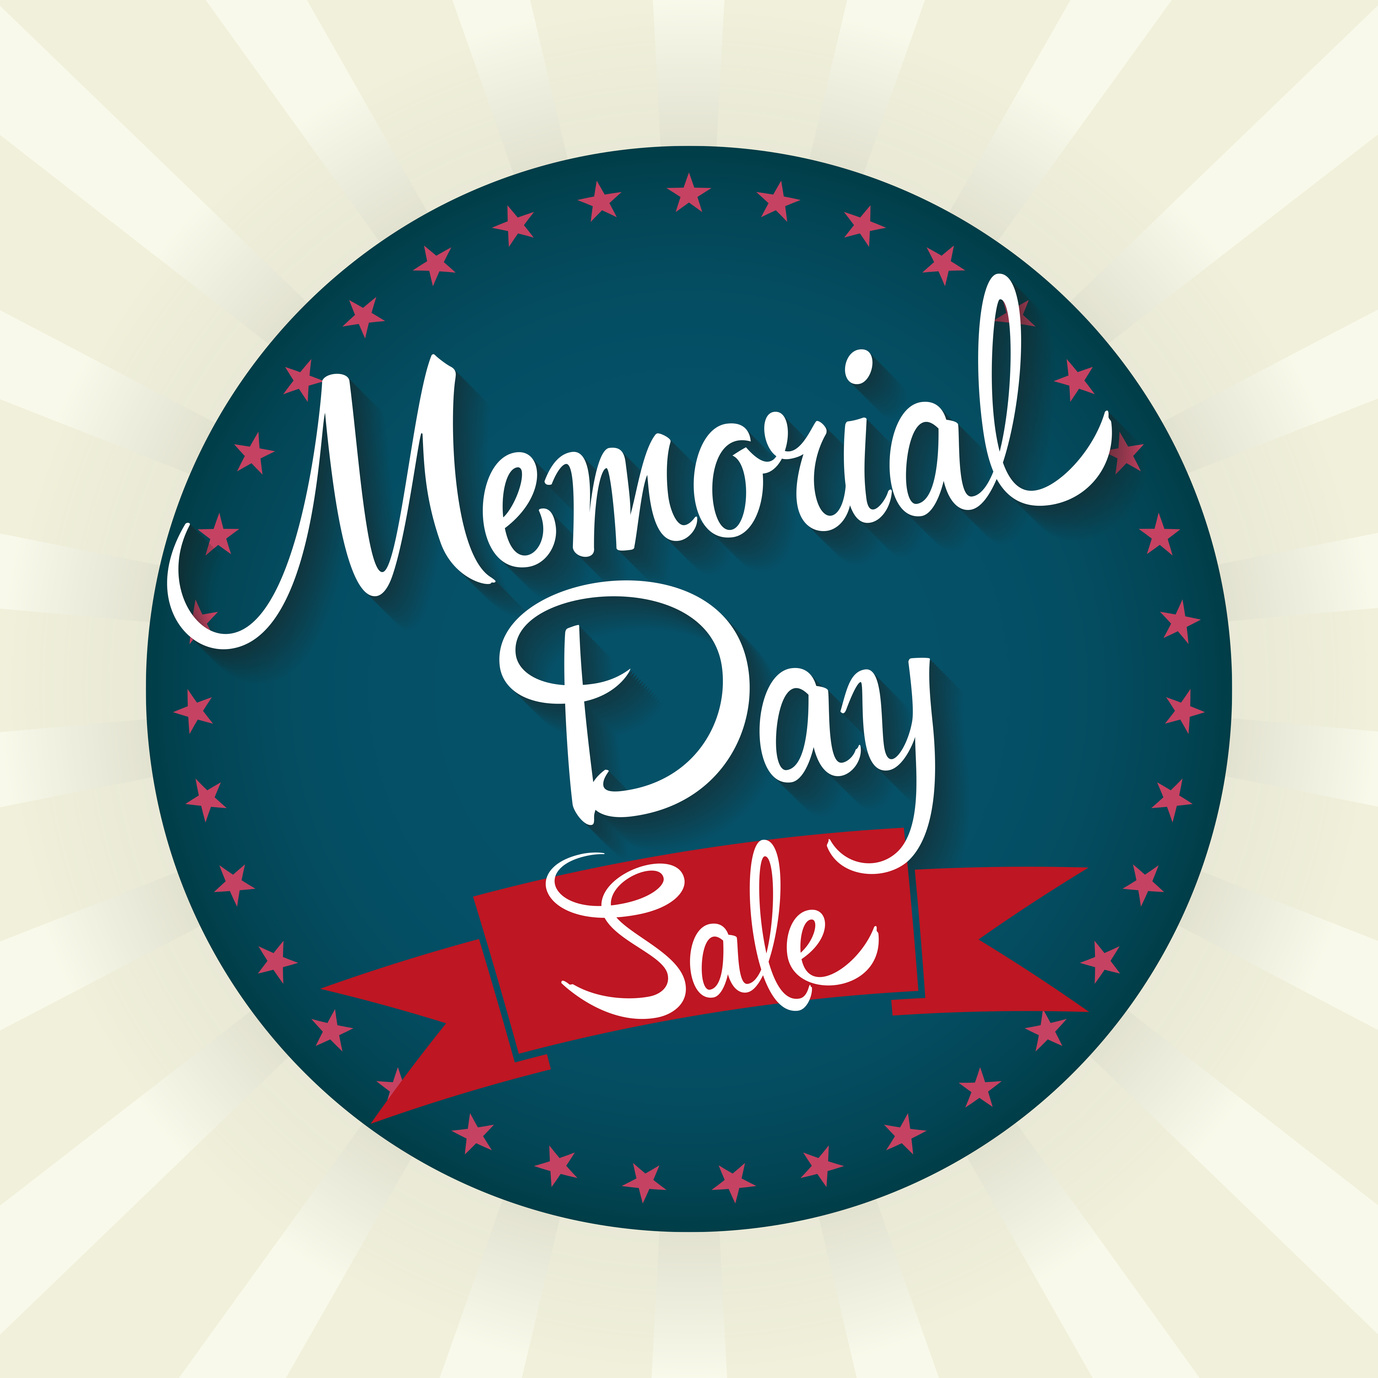 Memorial Day Sale Badge Vector Illustration. Text with Banner and Stars.